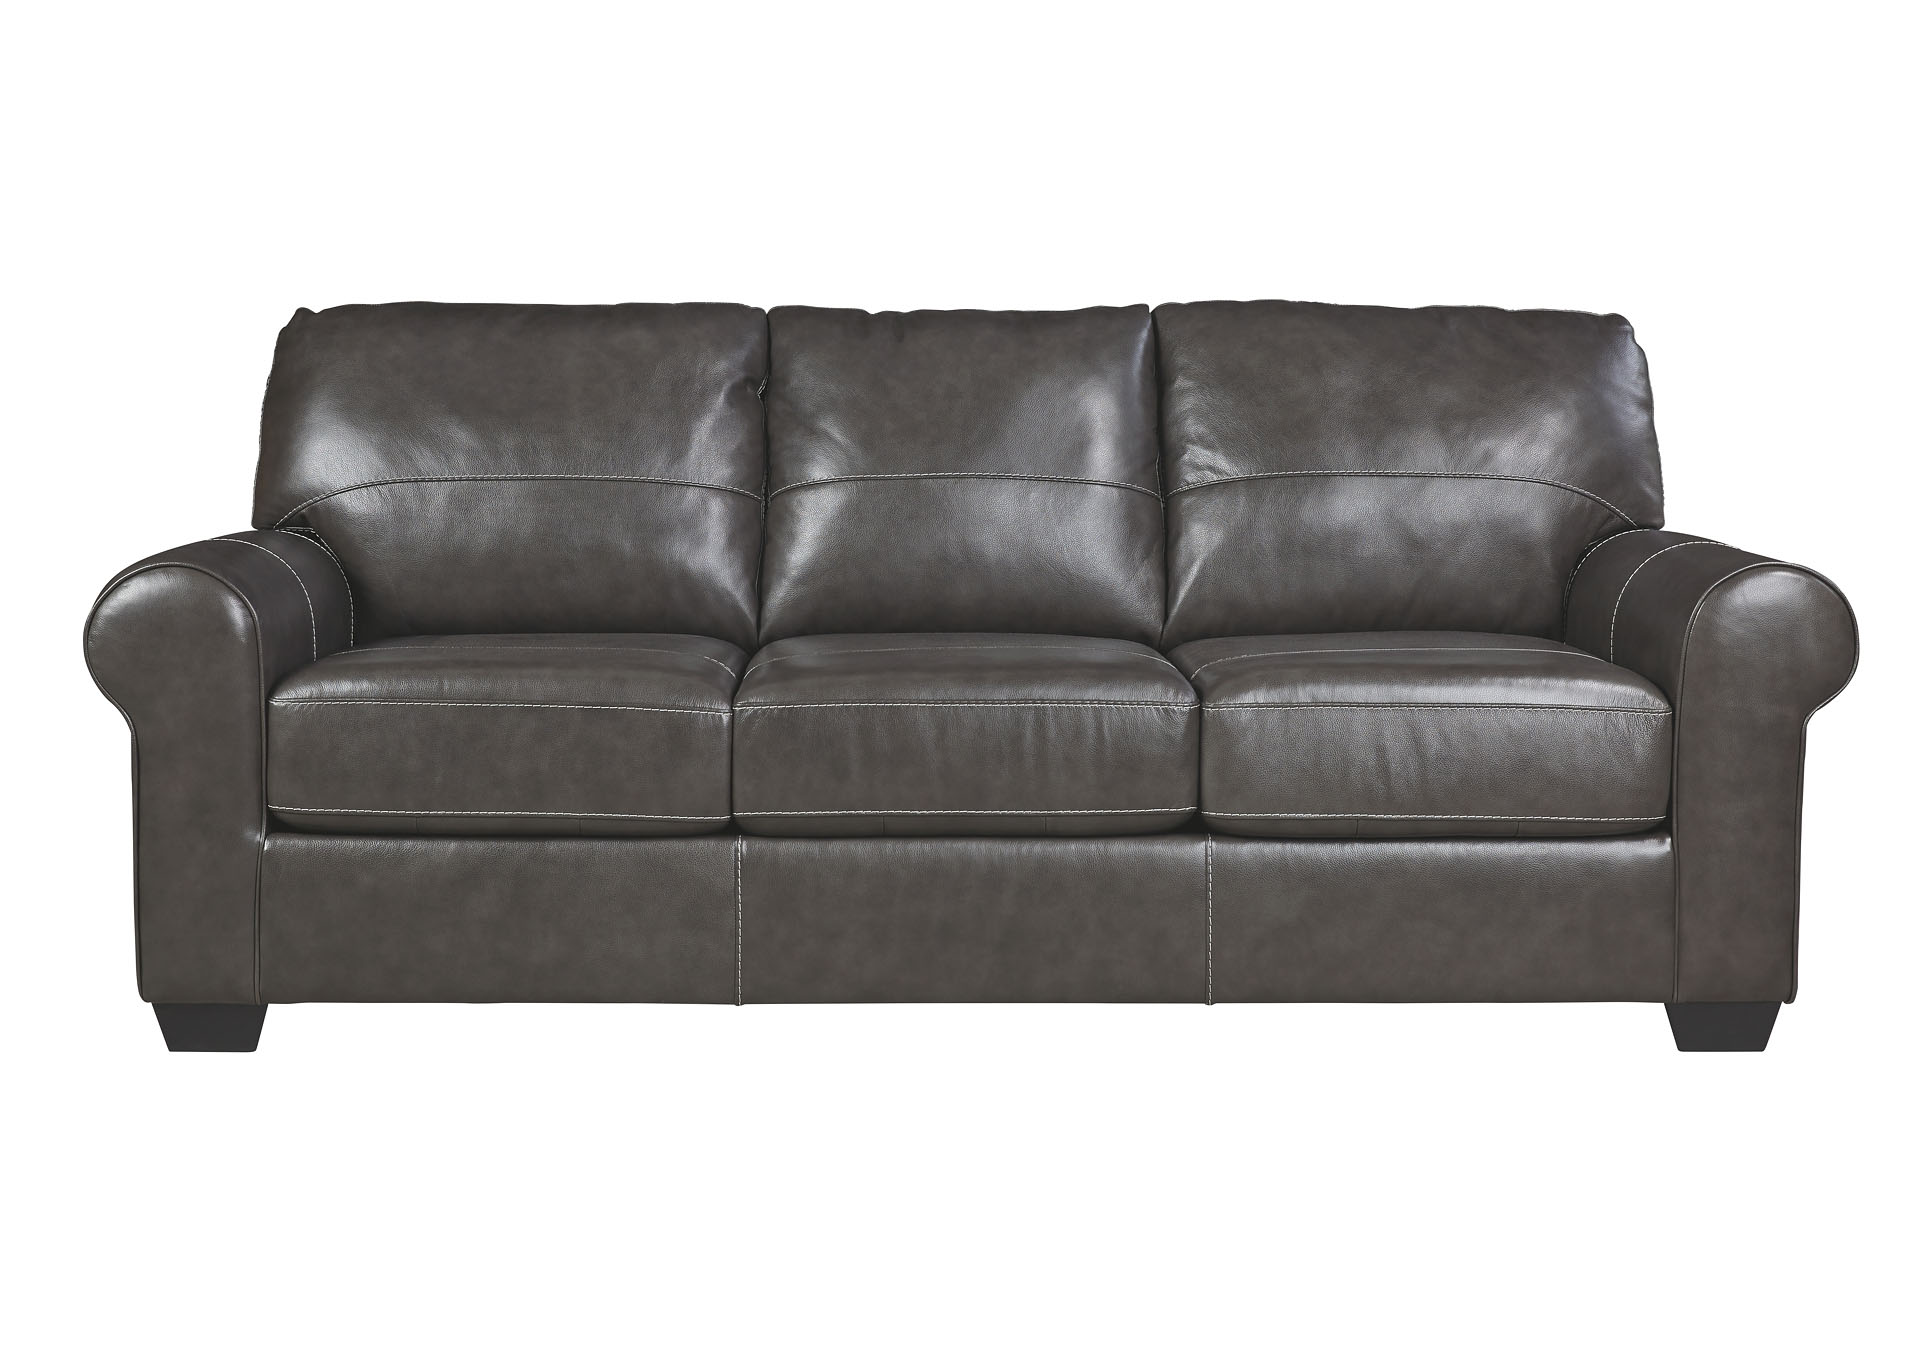 Furniture Mania Canterelli Gunmetal Sofa : 98003 38 SW from furnituremania.net size 1050 x 744 jpeg 154kB